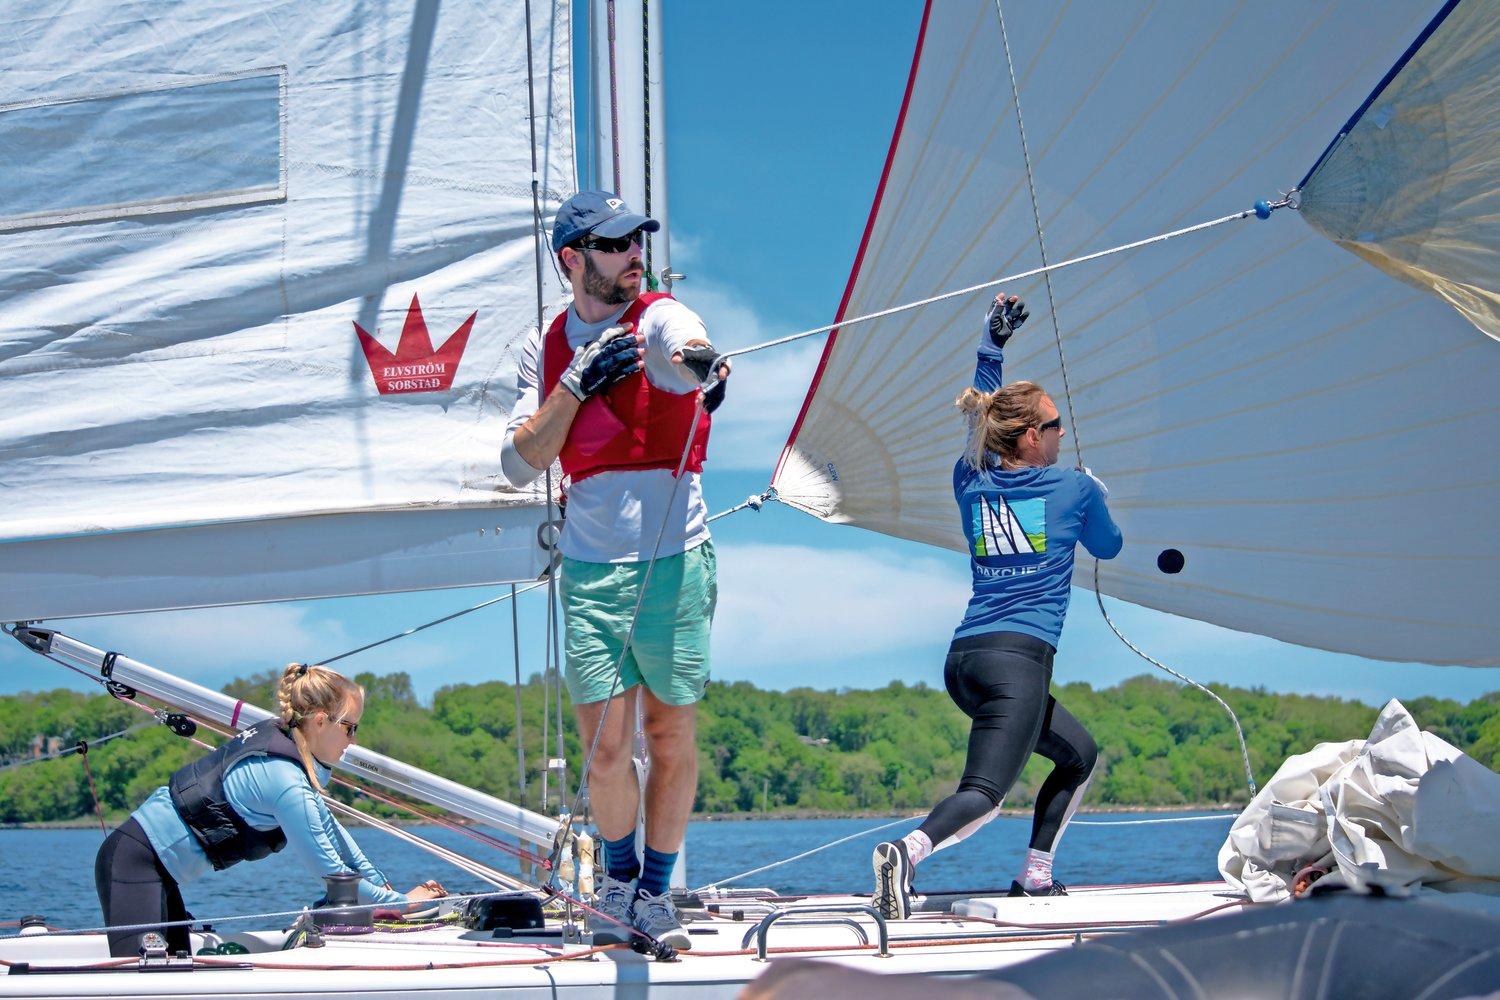 Myles Cornwell acting as a human pole during the team's spinnaker set, as Irina Beloborodova and Hilary Kenyon hoisted up a jib sail at Oakcliff's Match Race Regatta in May.